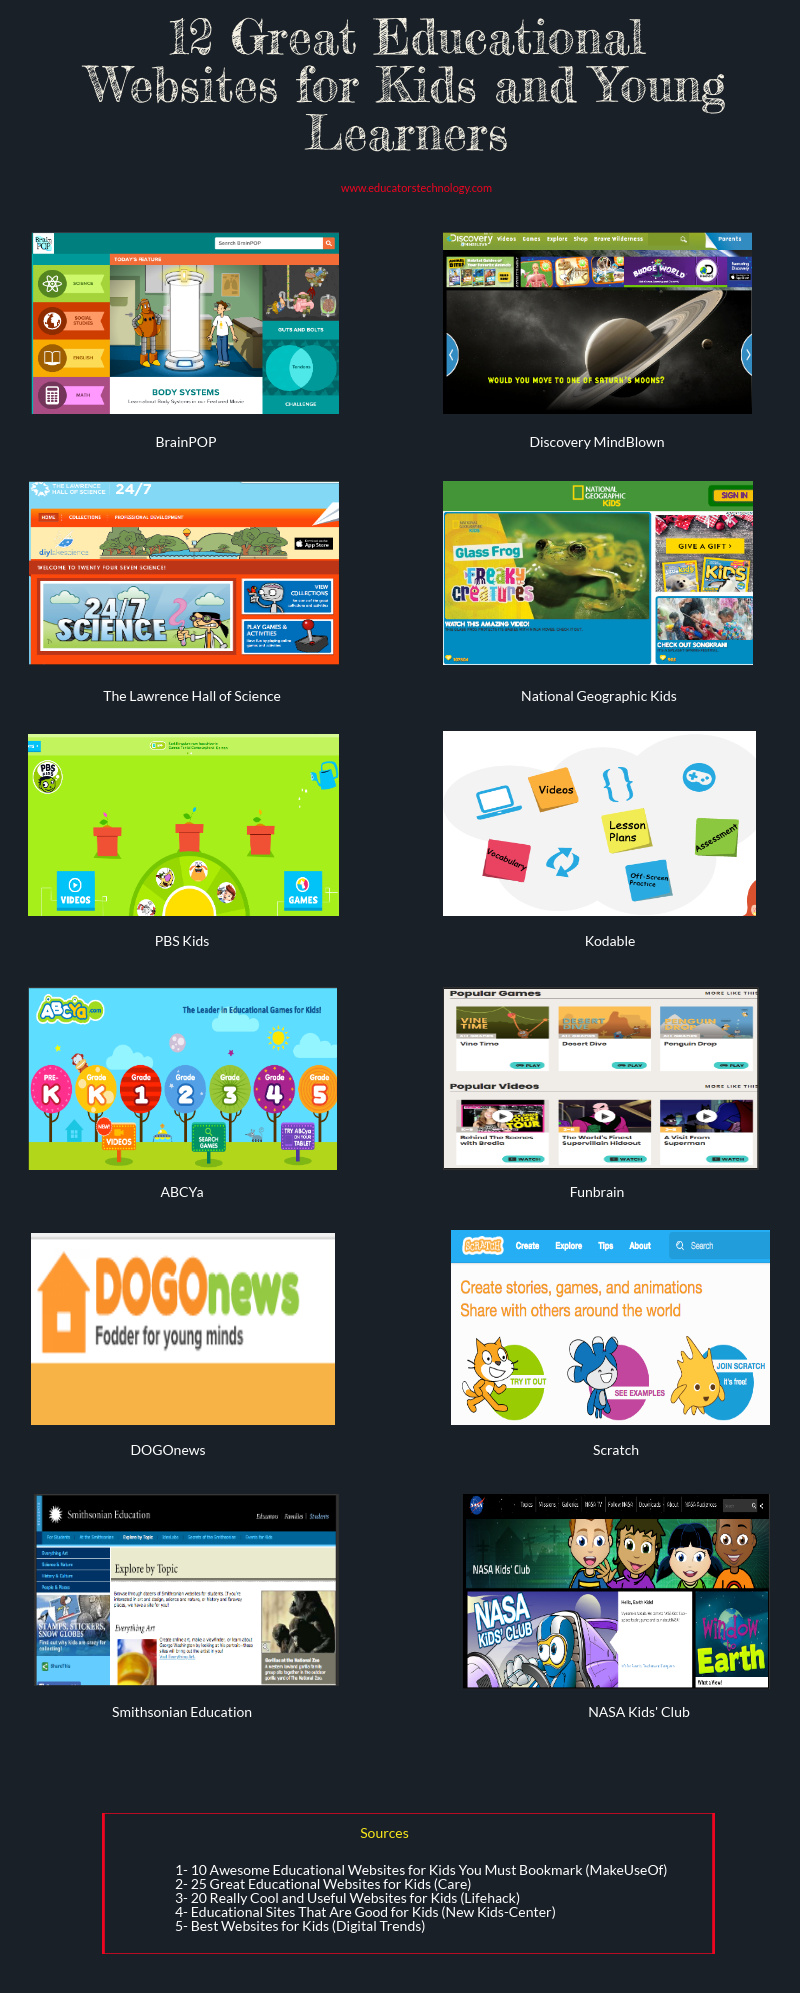 12 Geat Educational Websites for Kids and Young Learners